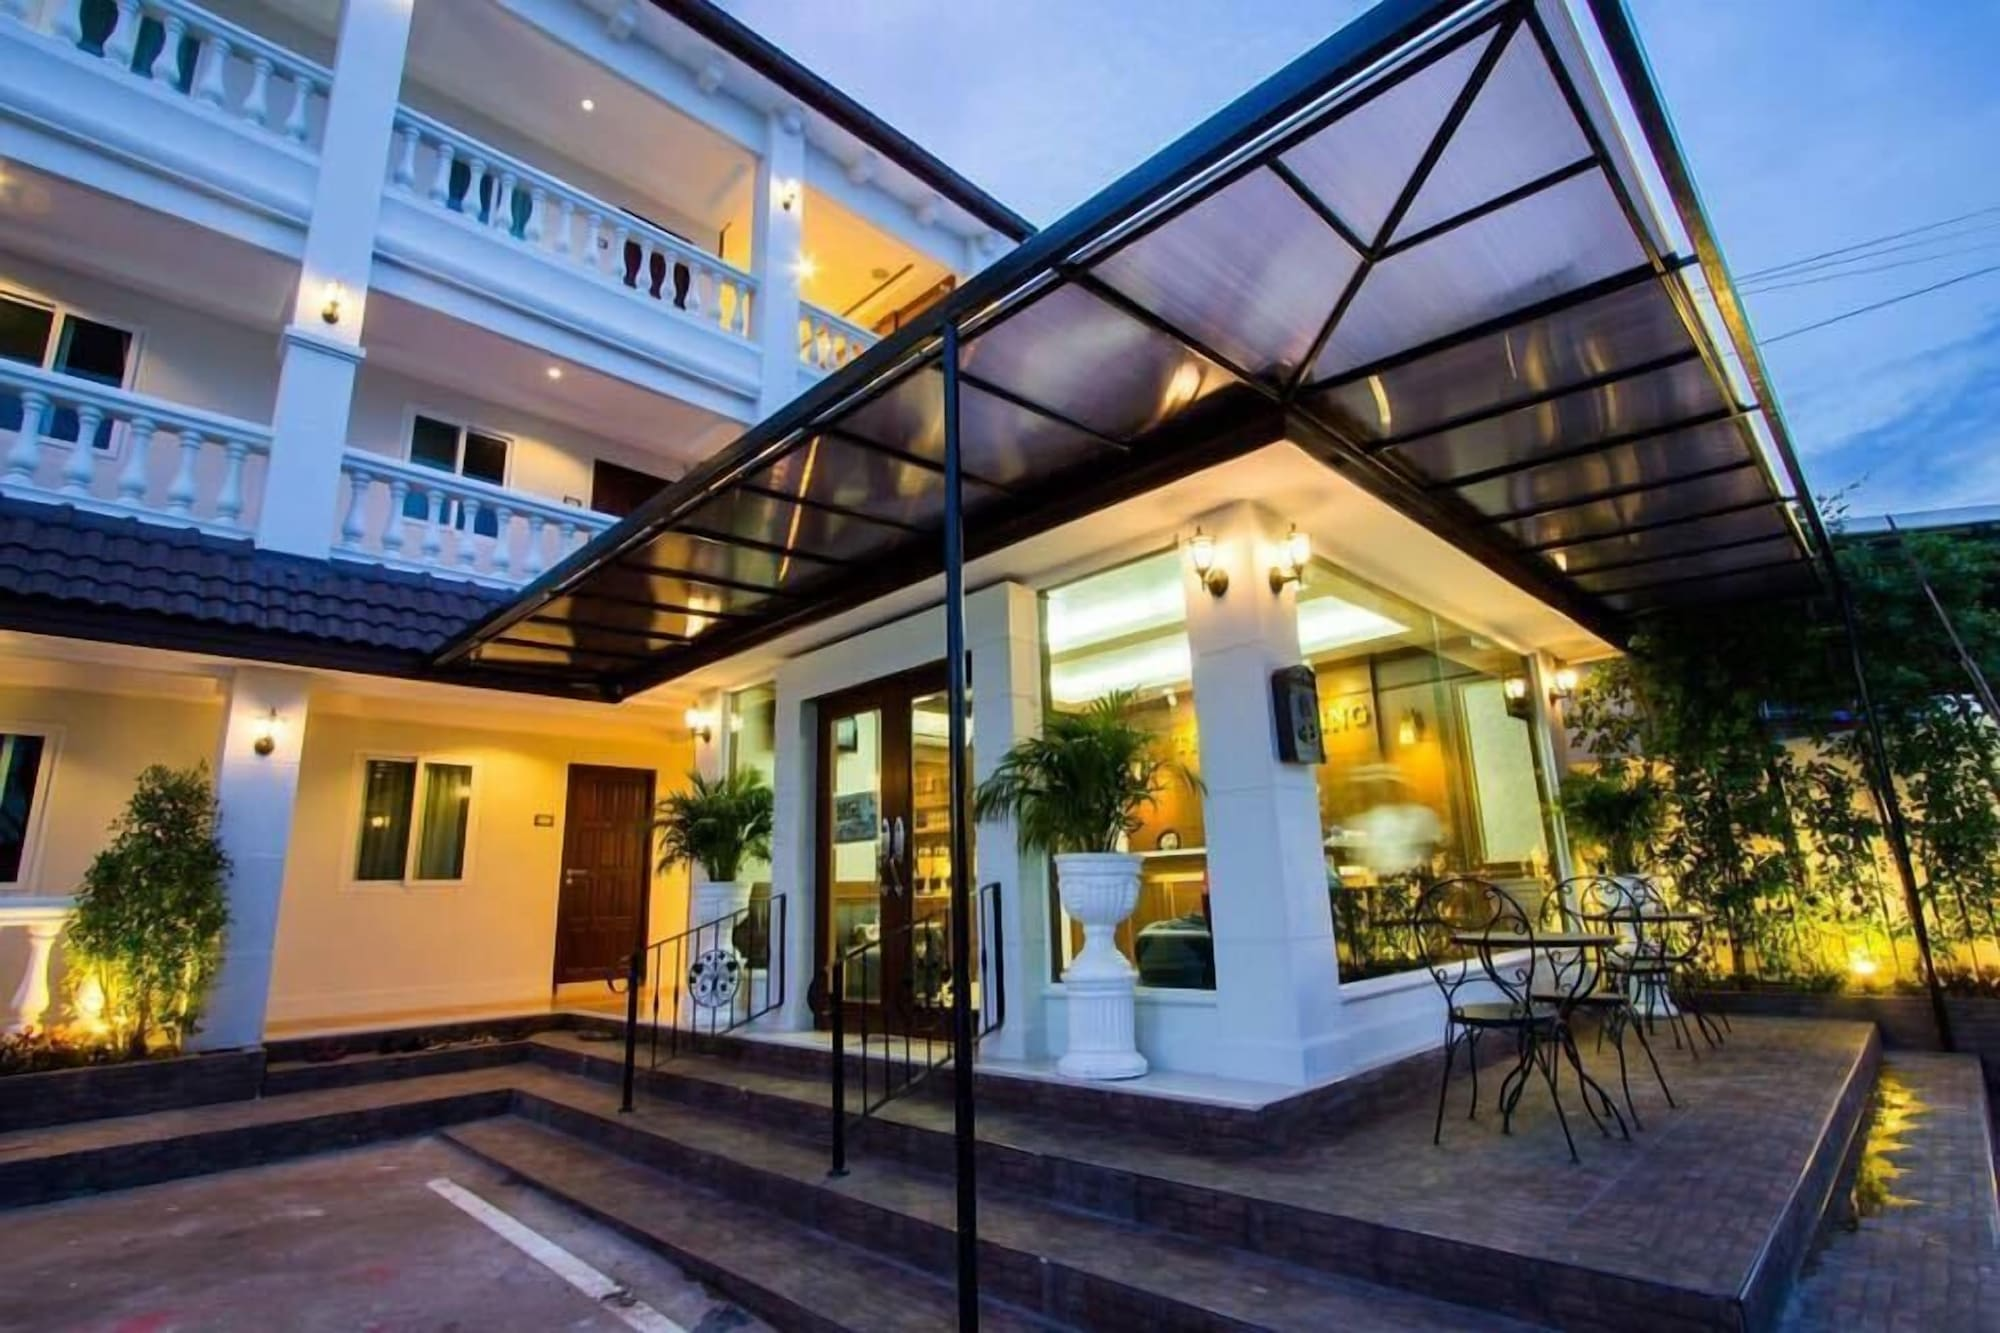 The Lion King Hotel, Muang Udon Thani